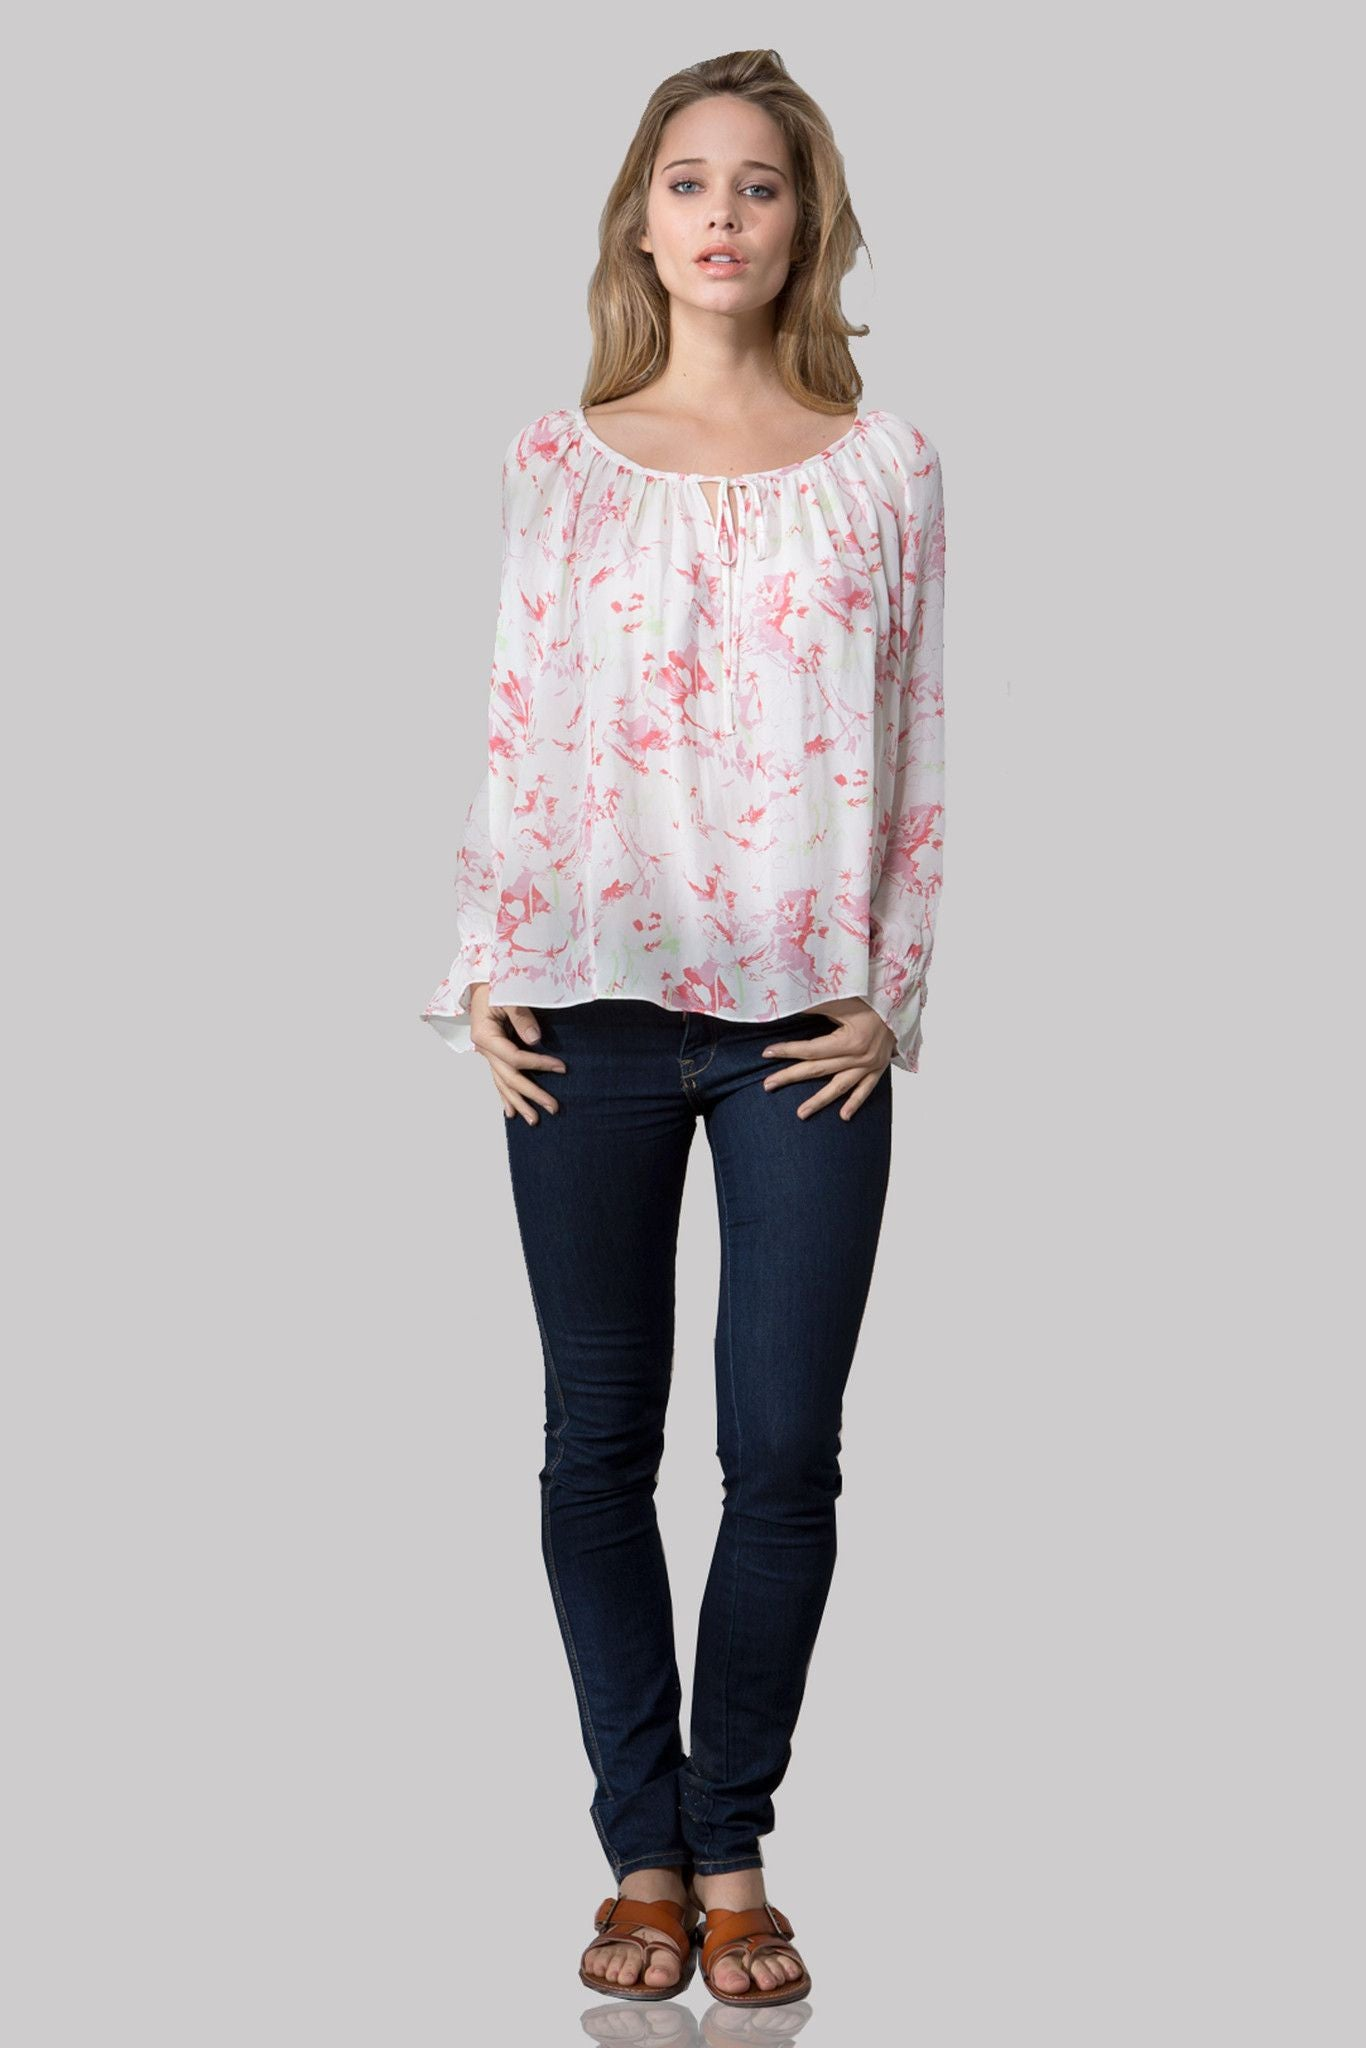 T125 PRINTED BLOUSE IN DBL GGT CHERRY BLOSSOM PRINT